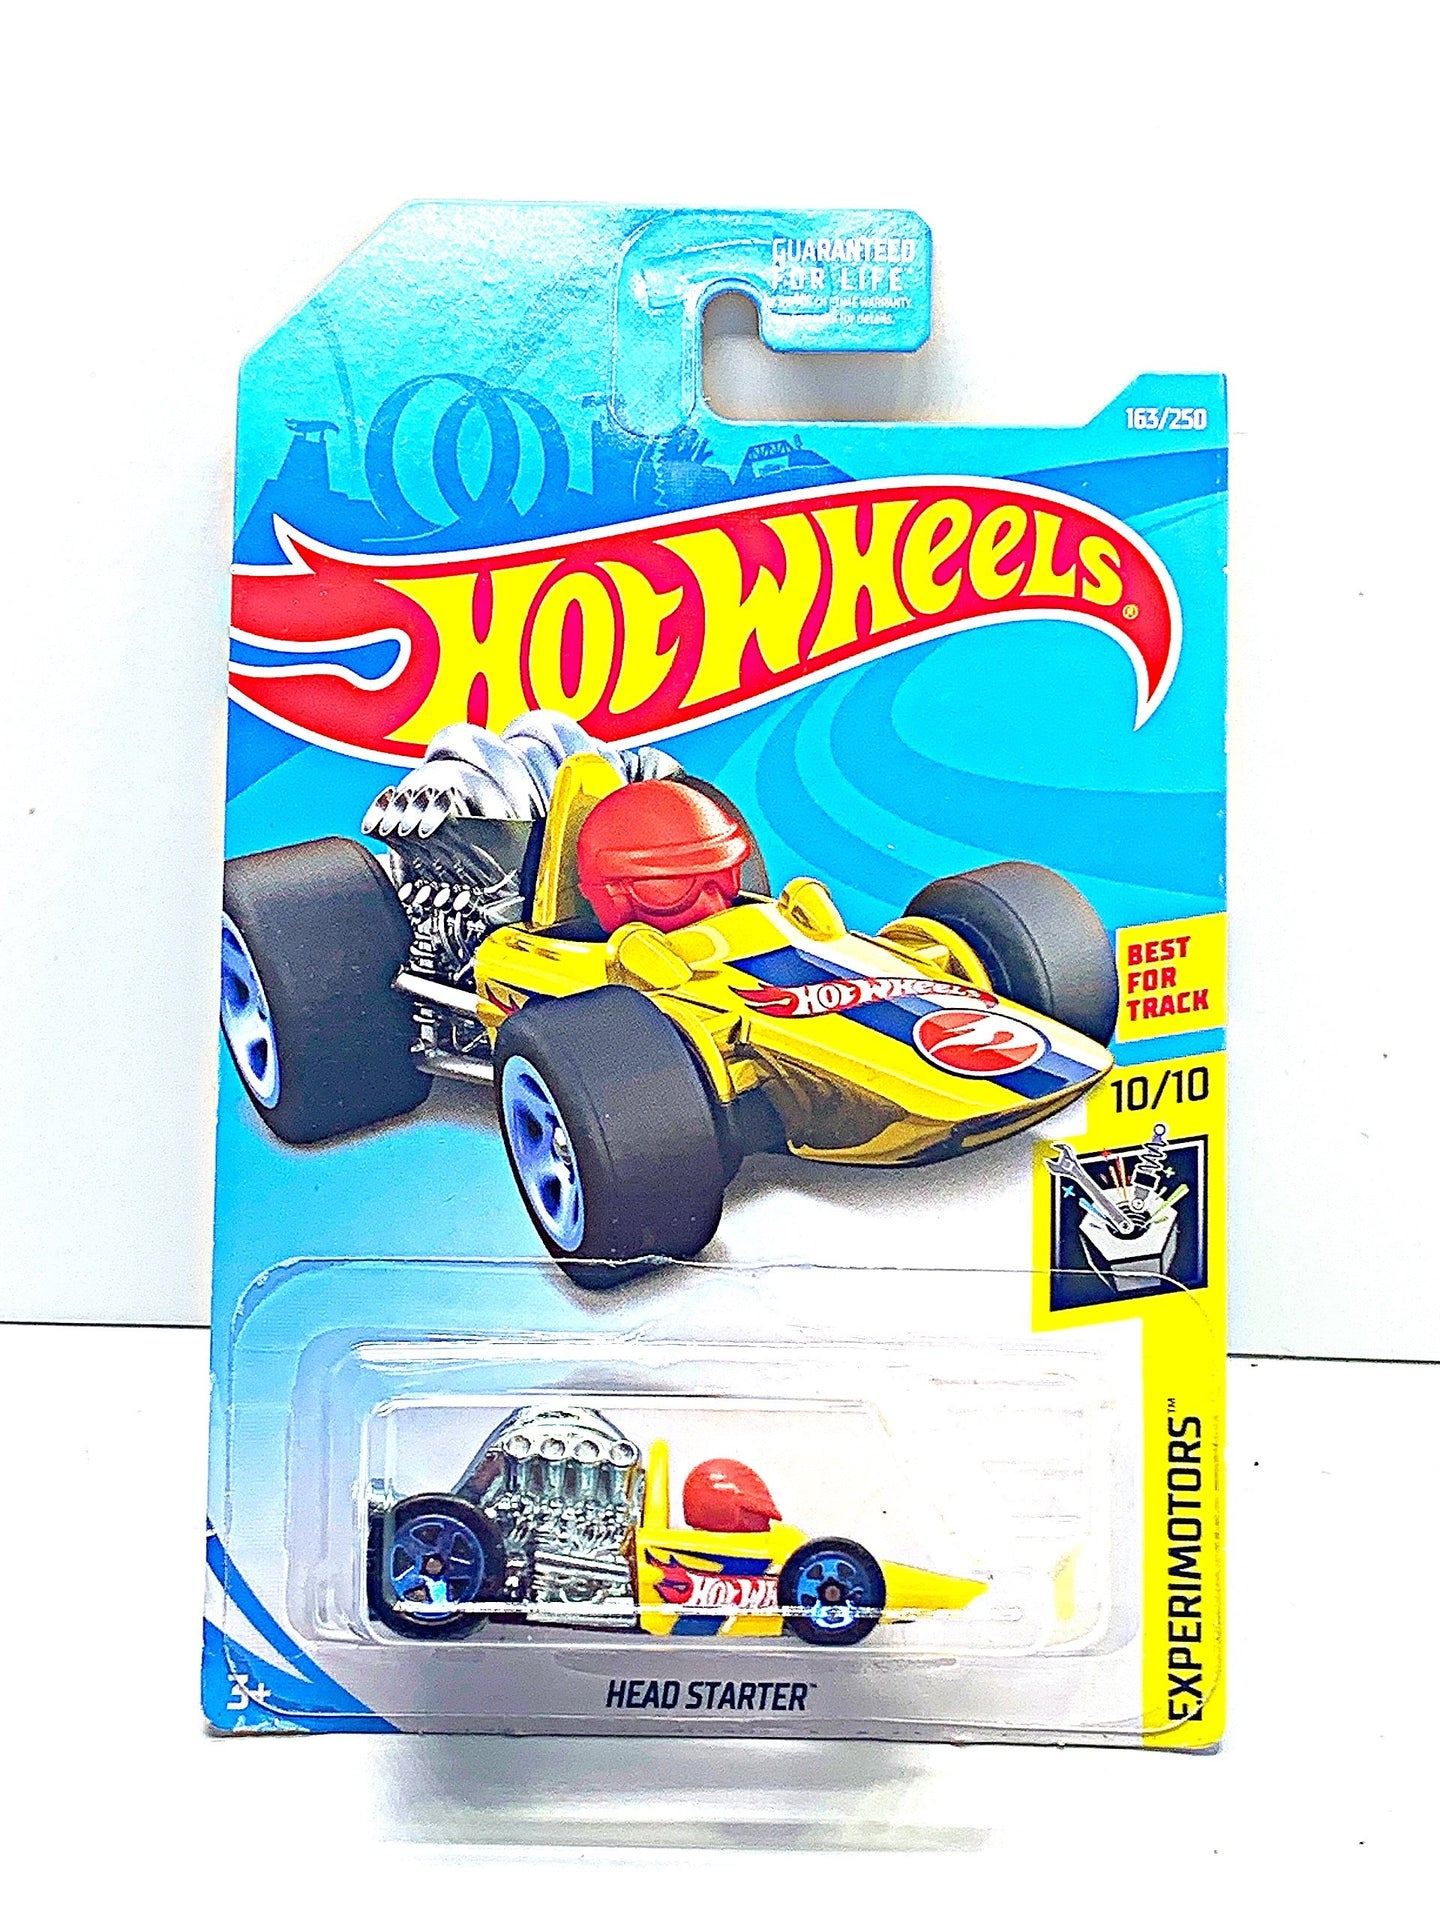 Hot wheels treasure hunt head starter - Gonzo's Garage